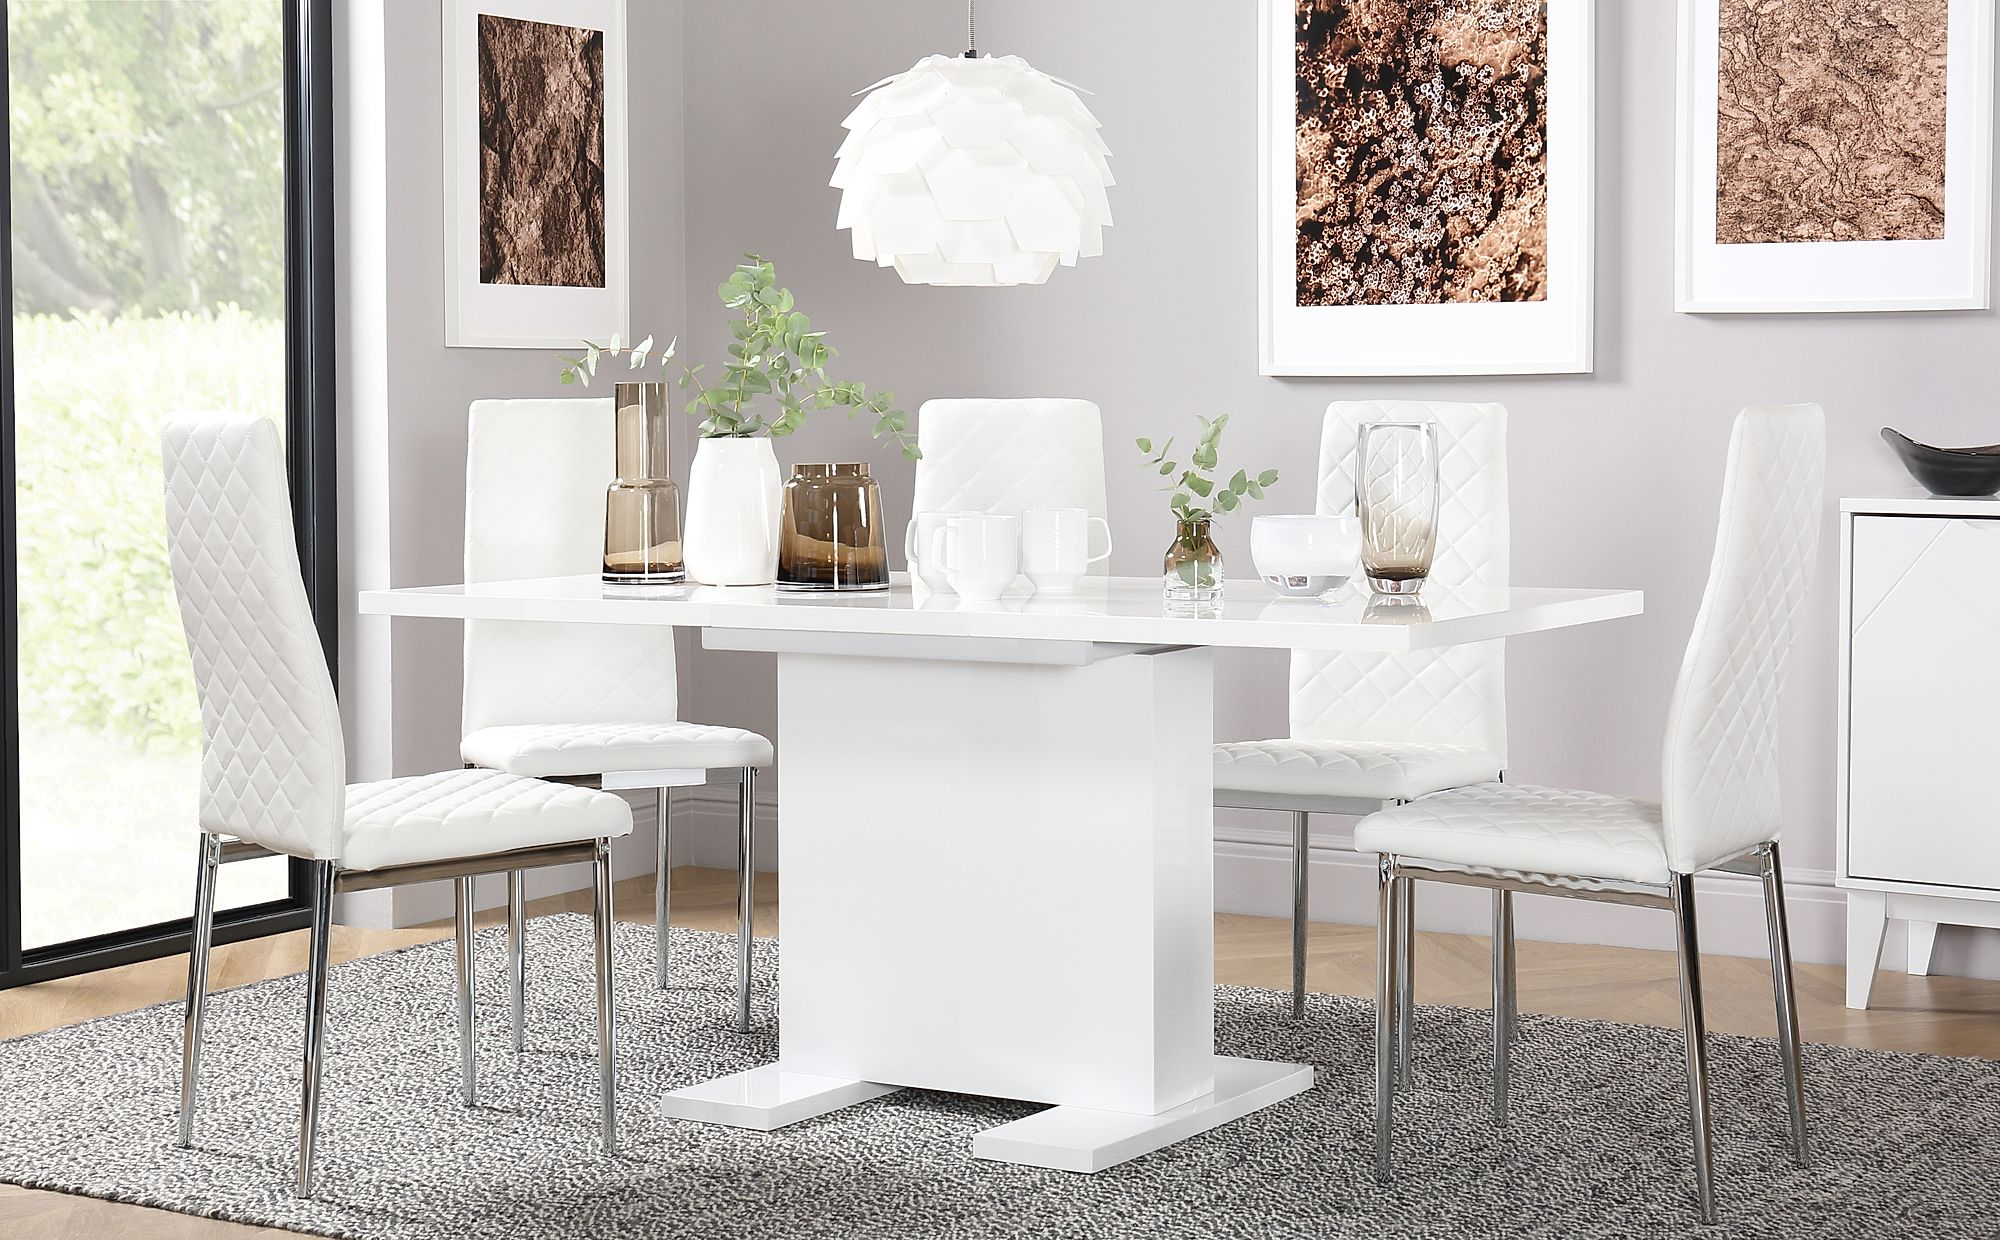 Gallery Osaka White High Gloss Extending Dining Table With 6 Renzo Chairs Chrome